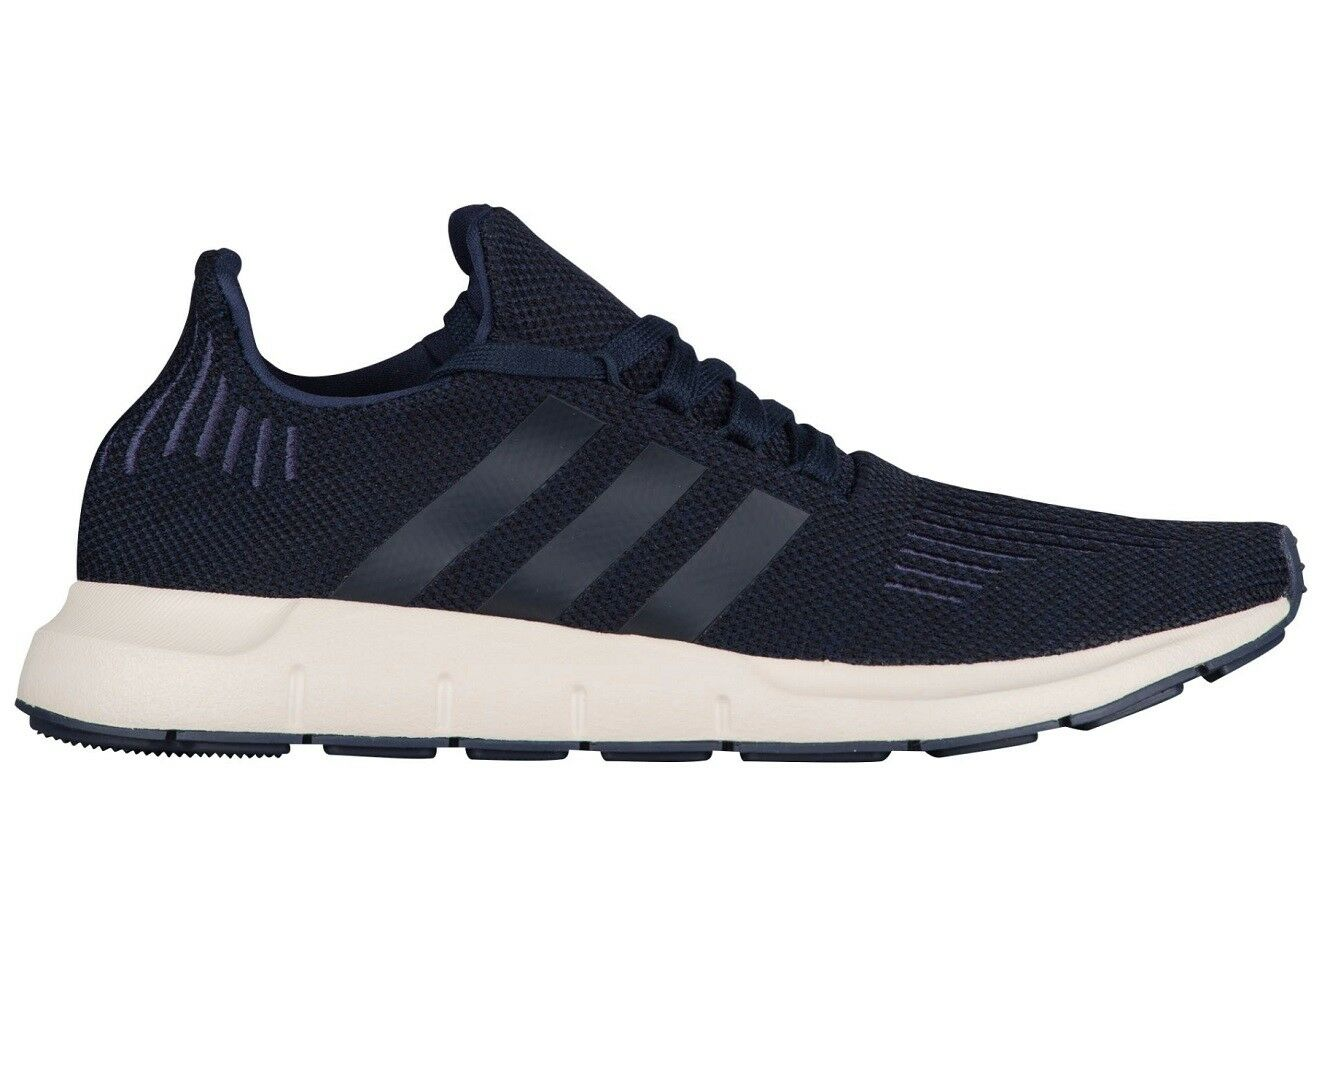 Adidas Swift Run Mens AC7165 Navy Trace bluee Knit Running shoes Size 9.5